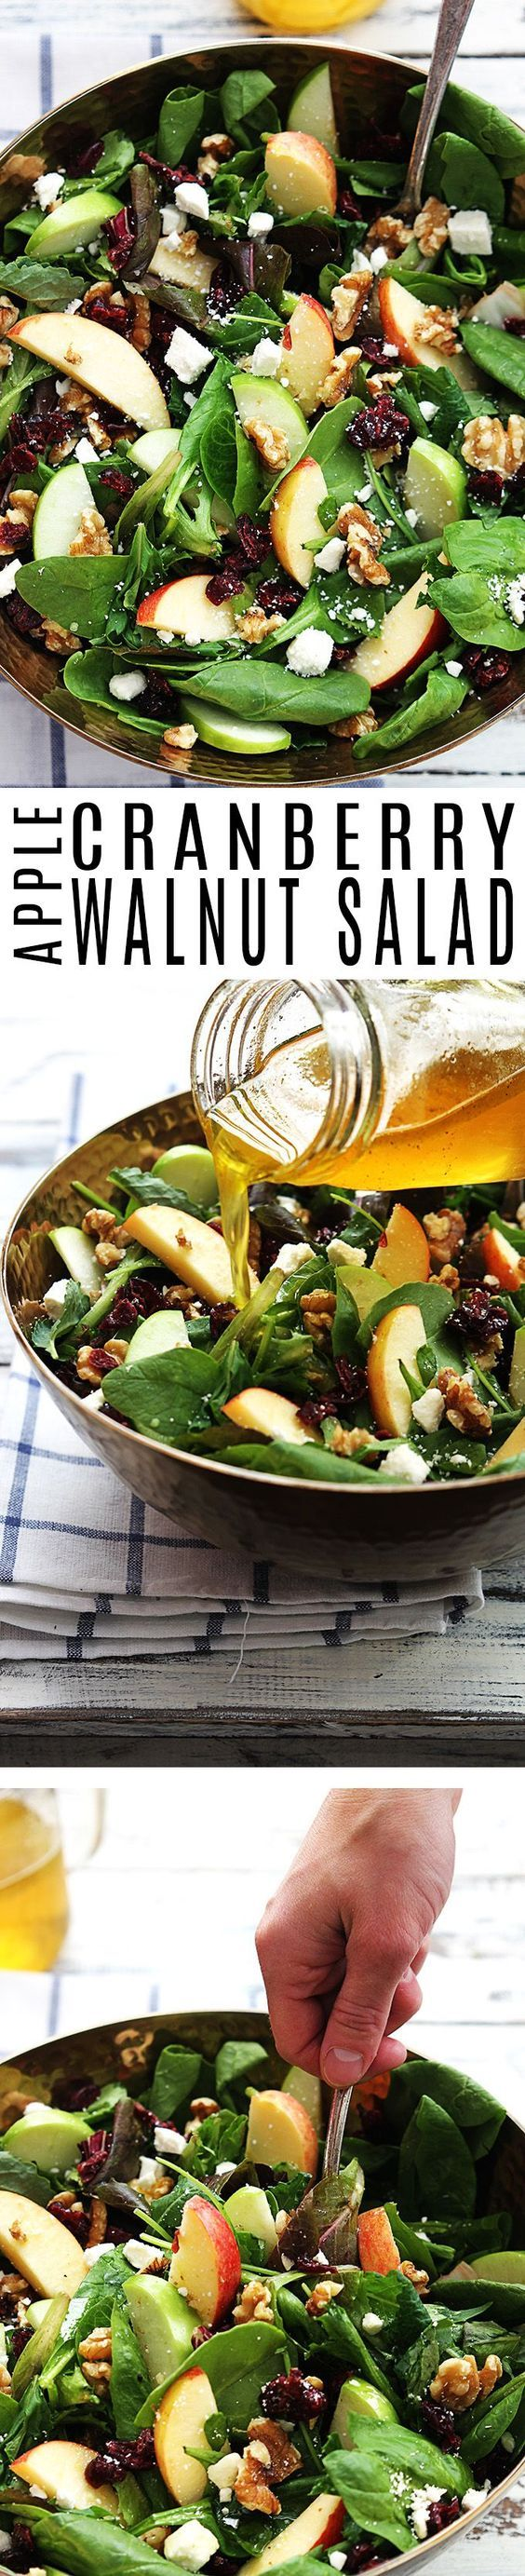 Apple Cranberry Walnut Salad Recipe via Creme De La Crumb